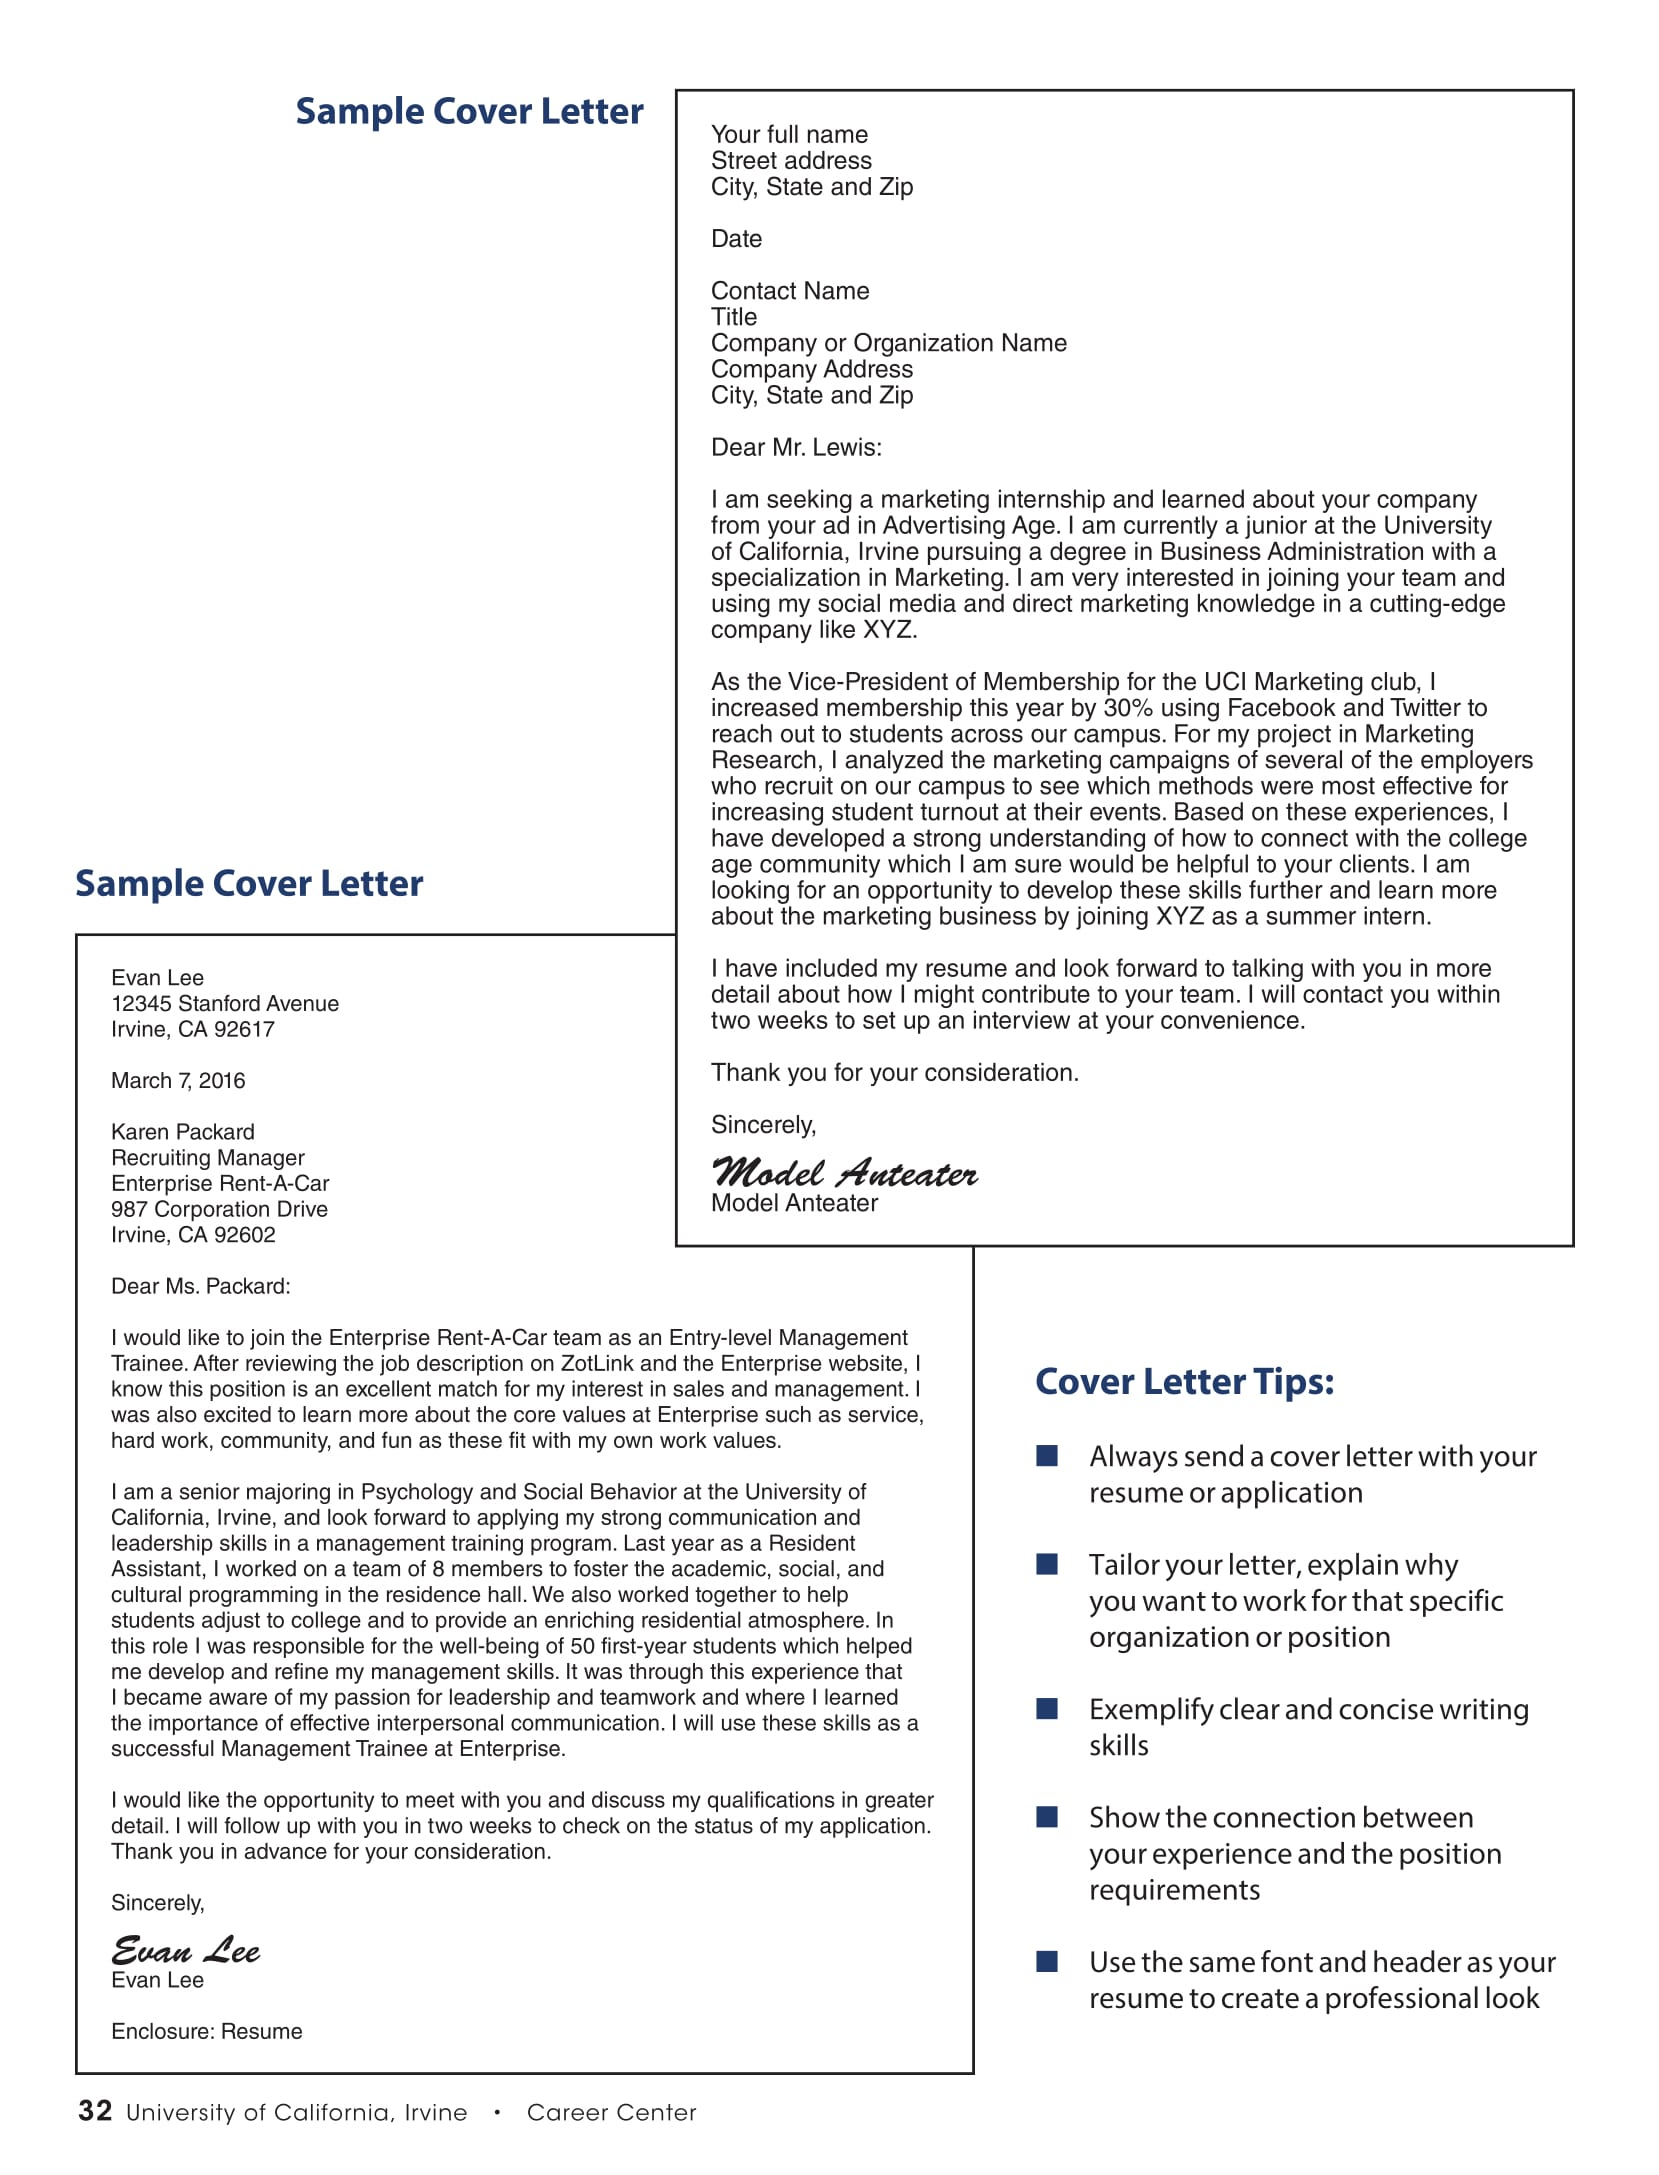 Covering Letter Sample For Resume 16 Best Cover Letter Samples For Internship Wisestep